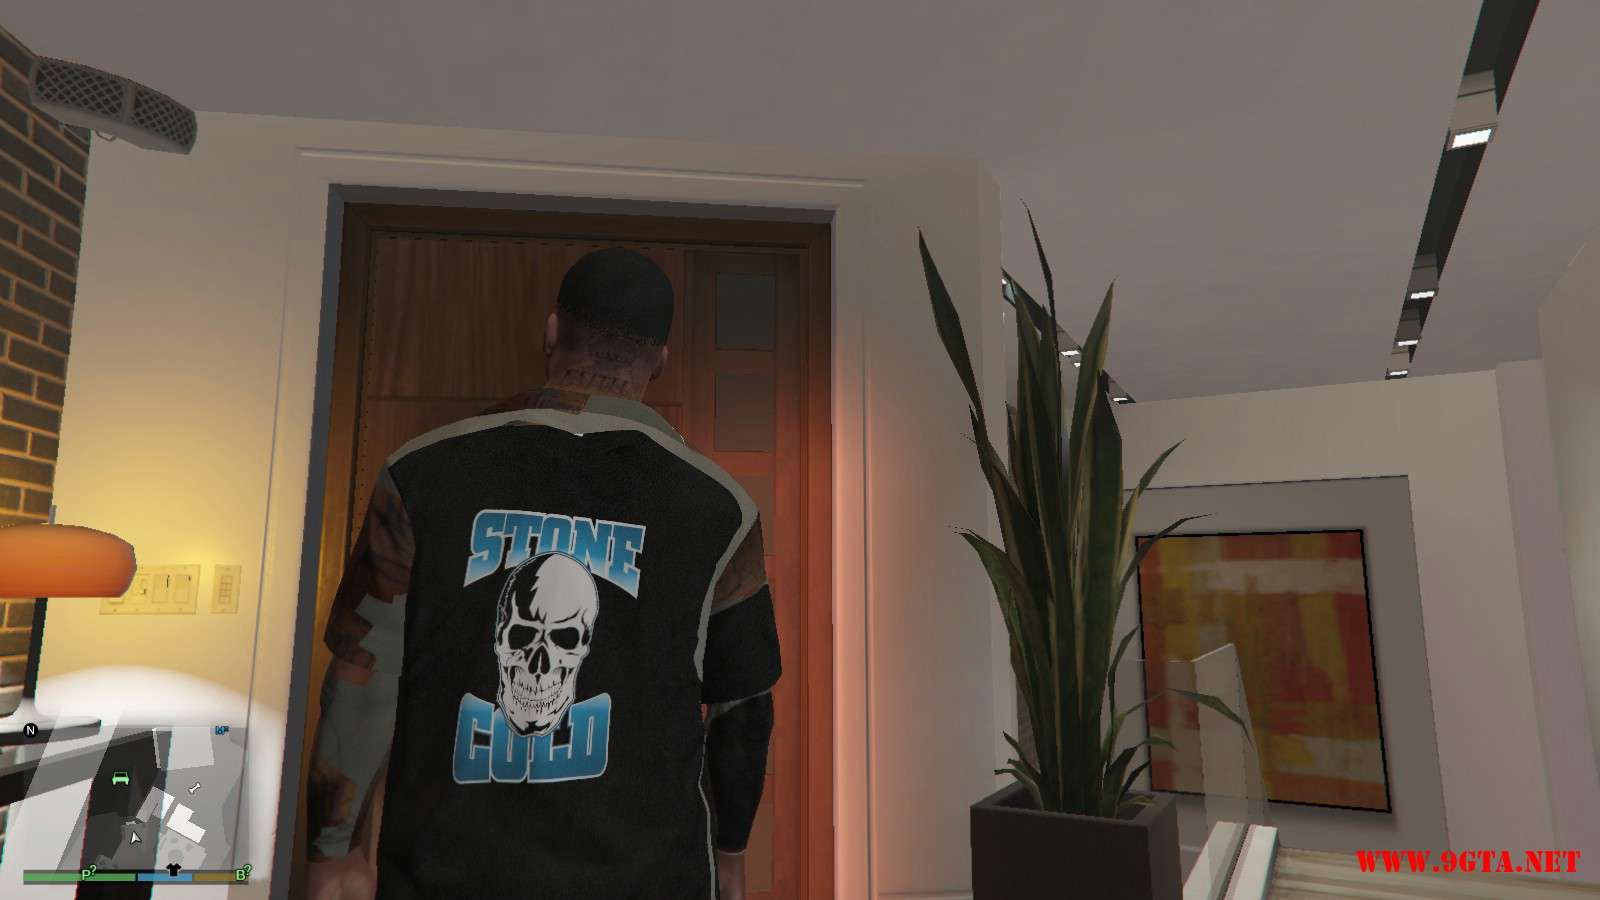 WWE Stone Cold Steve Austin Shirt GTA5 Mods (2)